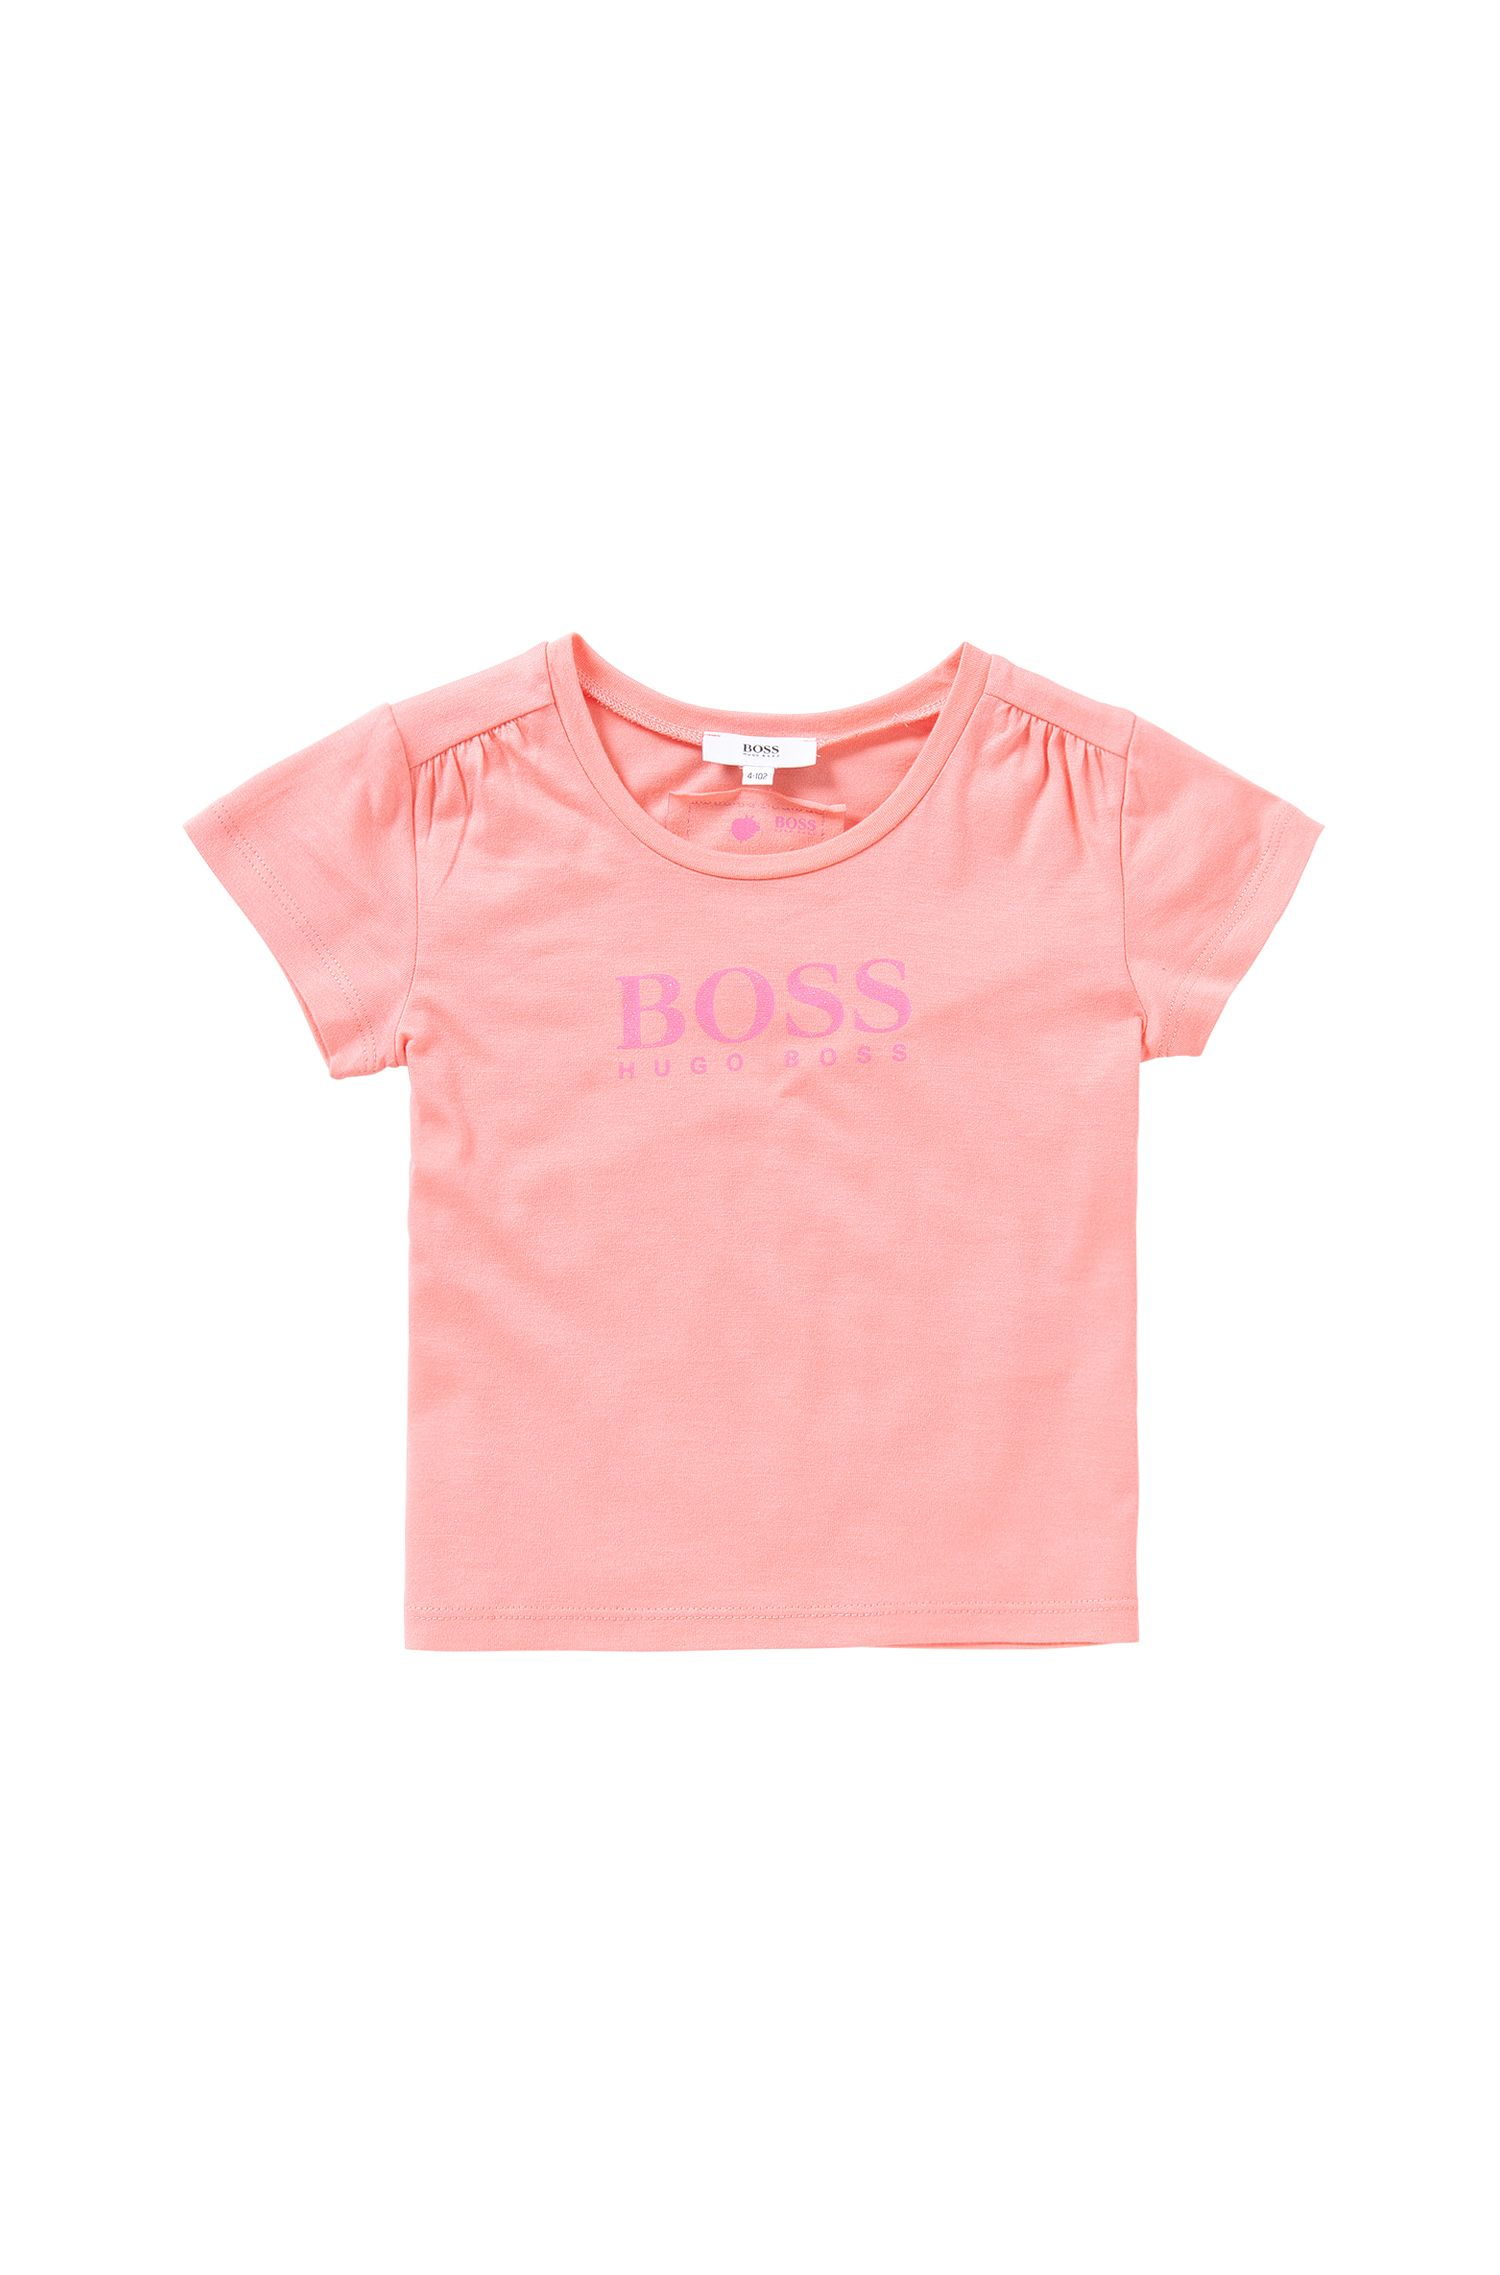 Printed kids' t-shirt in cotton blend: 'J15340'